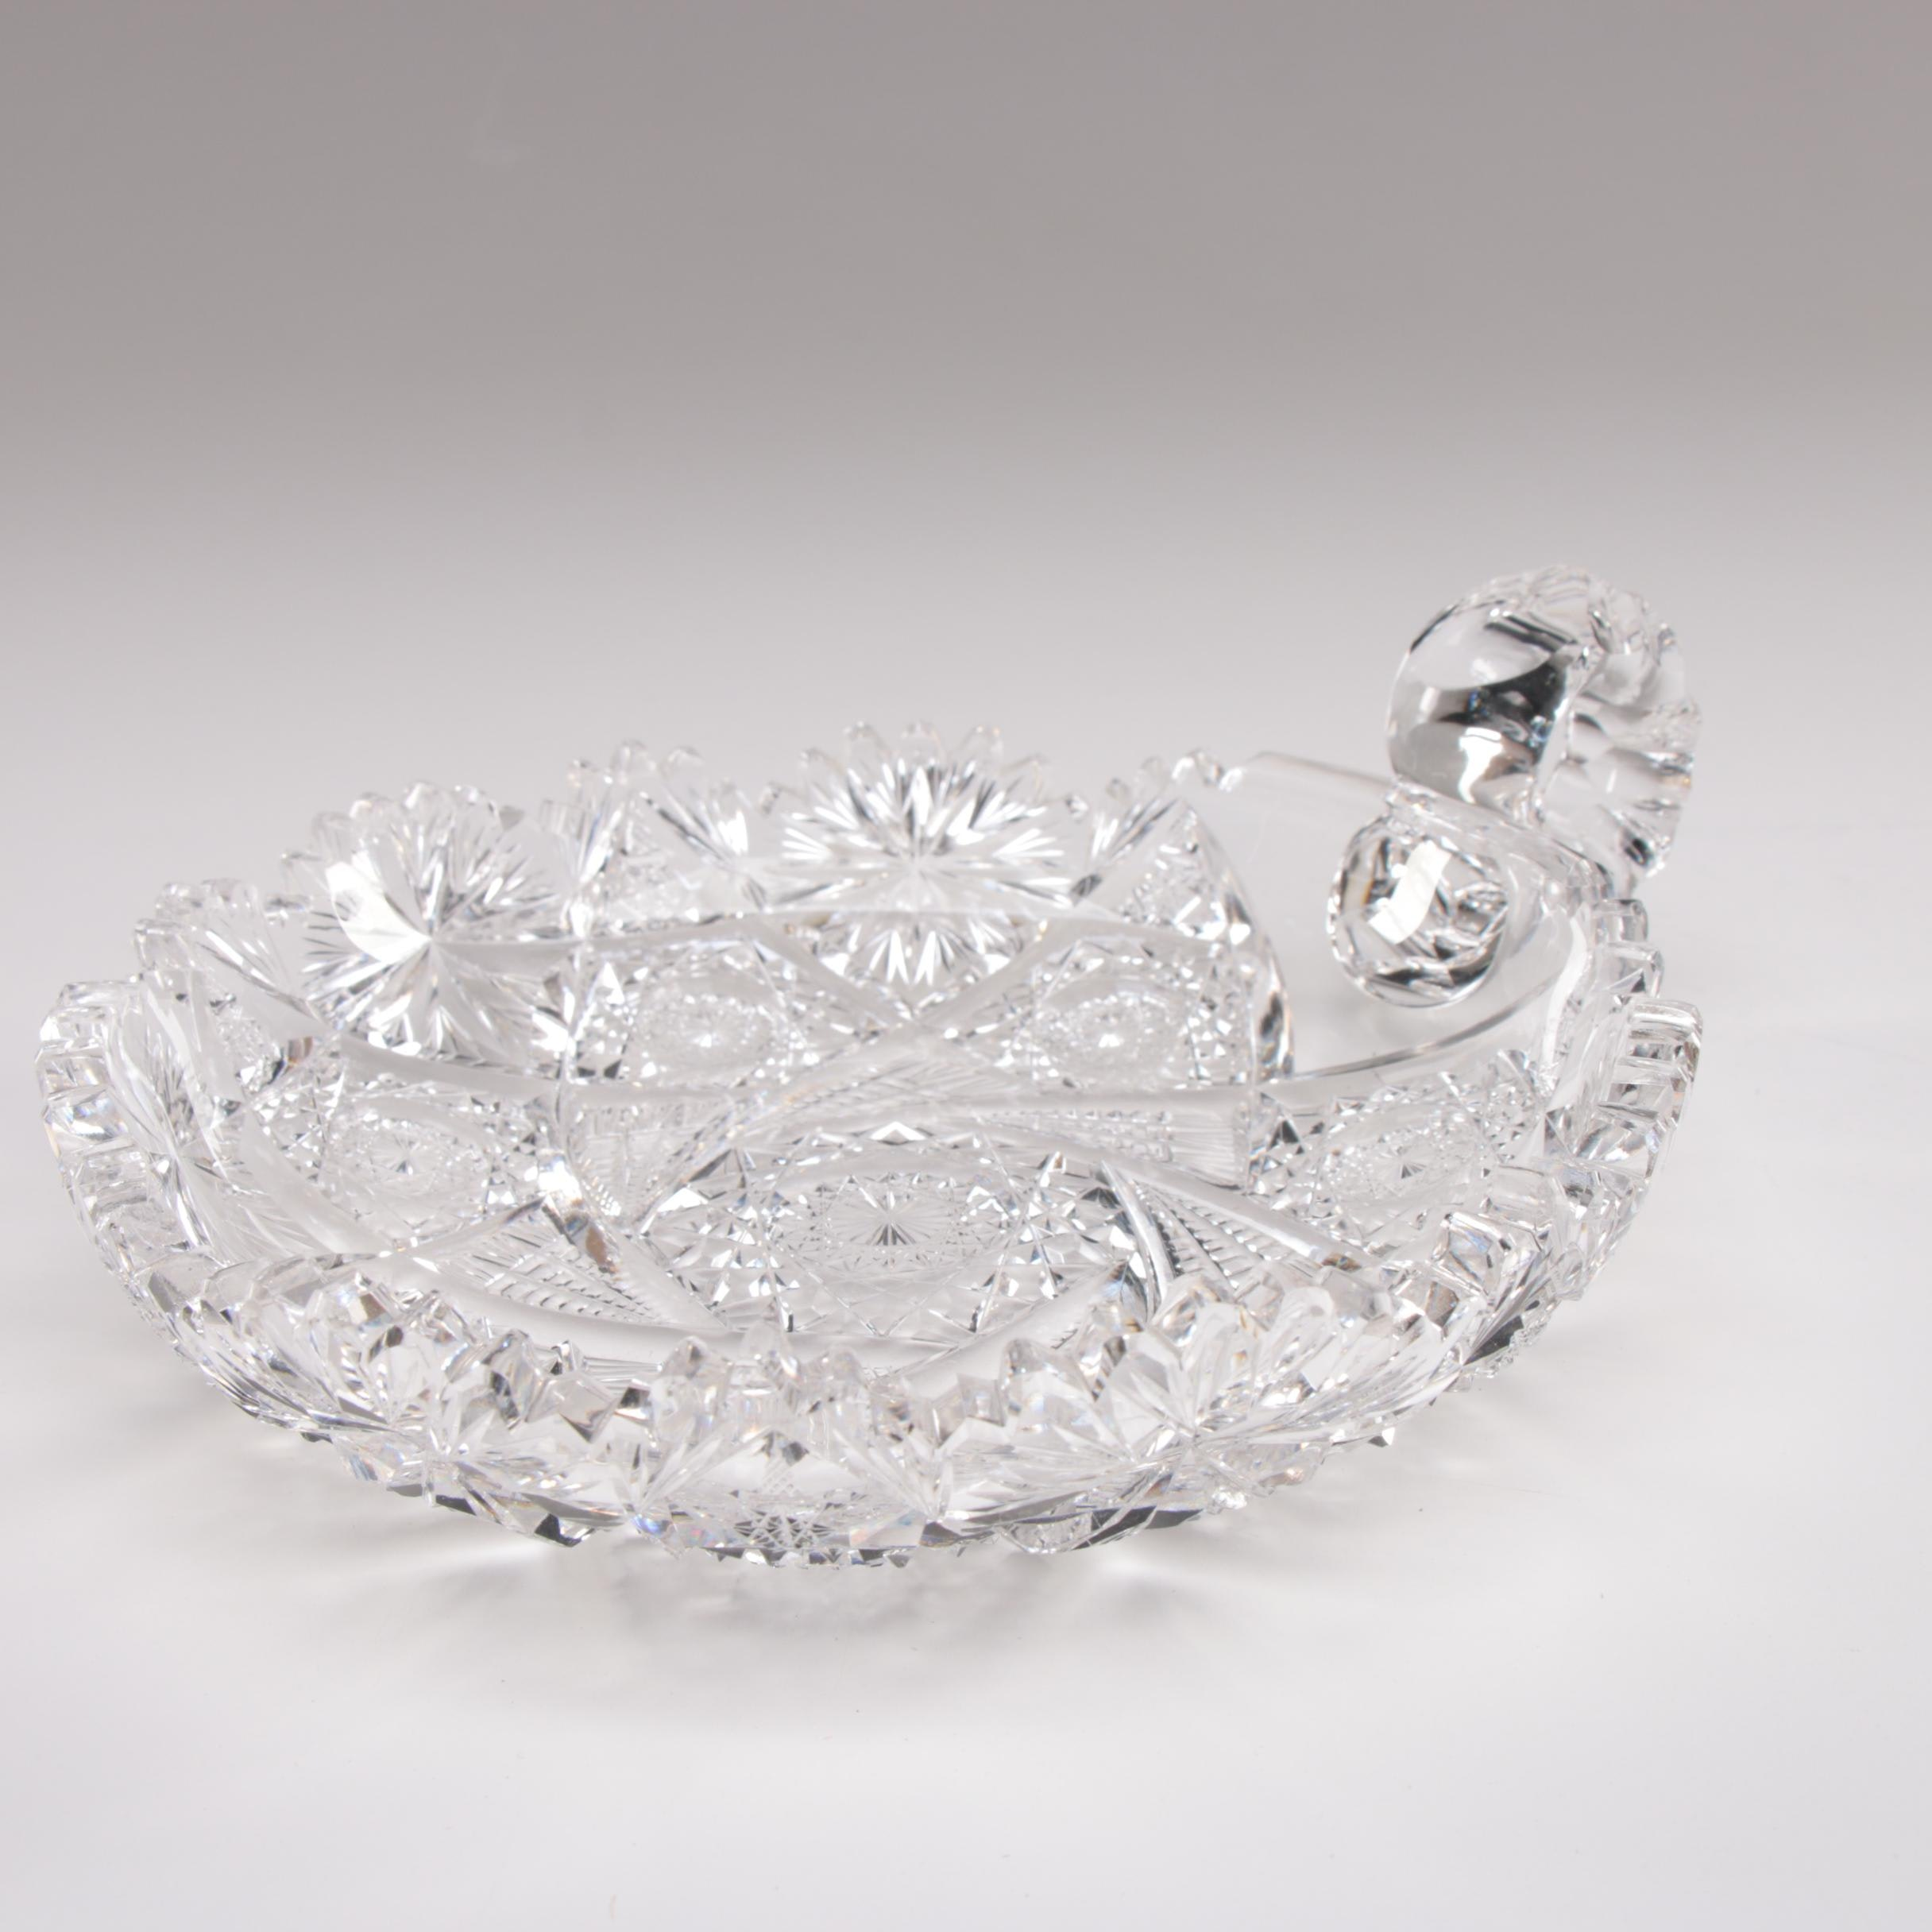 American Brilliant Cut Glass Bowl with Scroll Handle